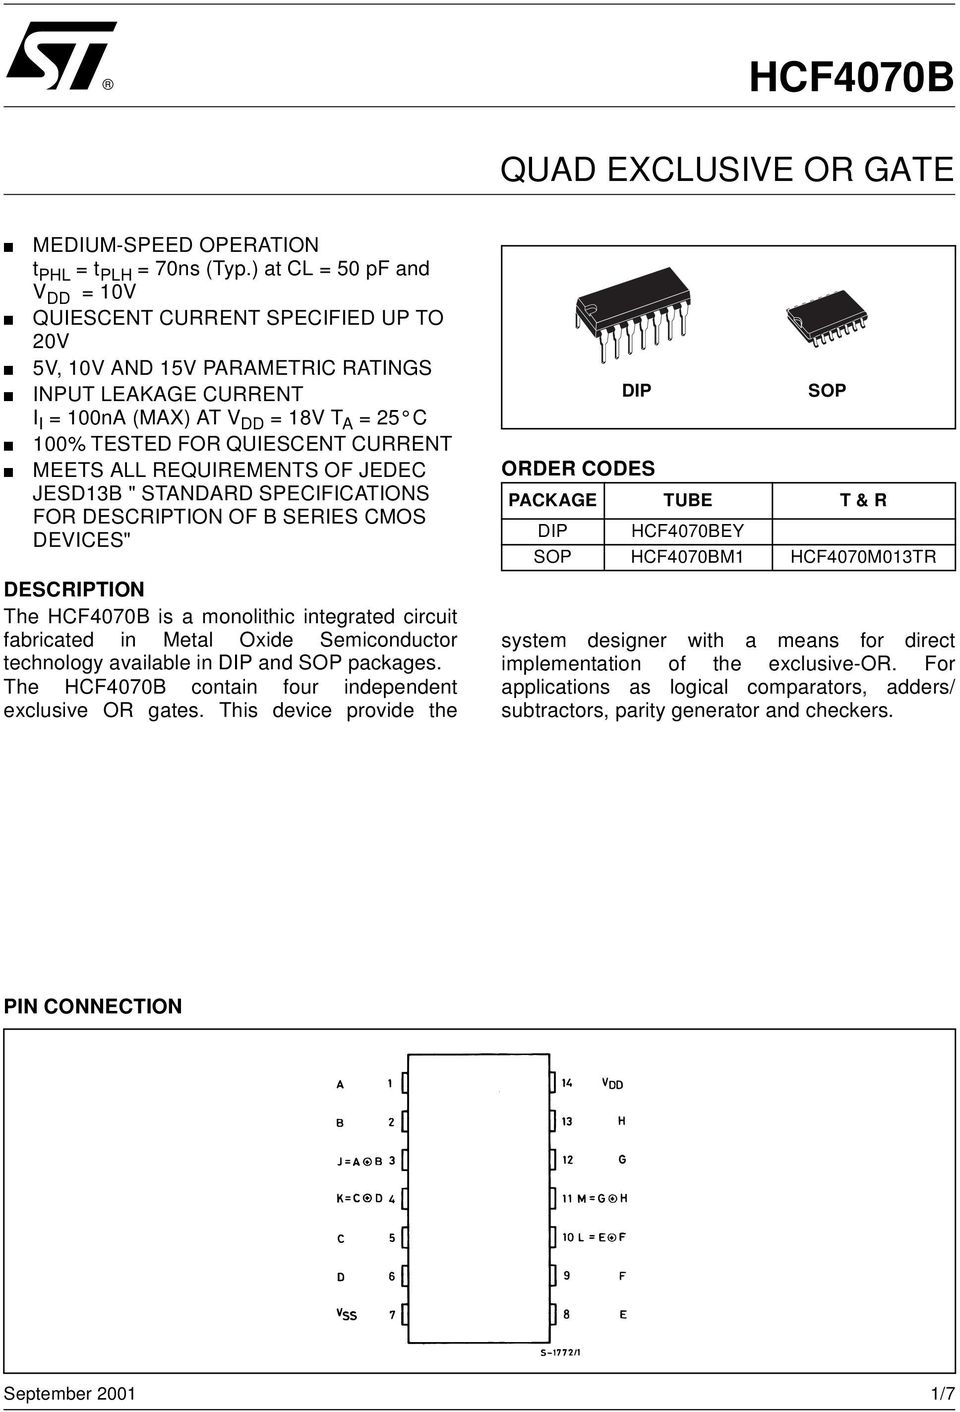 "ALL REQUIREMENTS OF JEDEC JESD13B "" STANDARD SPECIFICATIONS FOR DESCRIPTION OF B SERIES CMOS DEICES"" DESCRIPTION The HCF4070B is a monolithic integrated circuit fabricated in Metal Oxide"